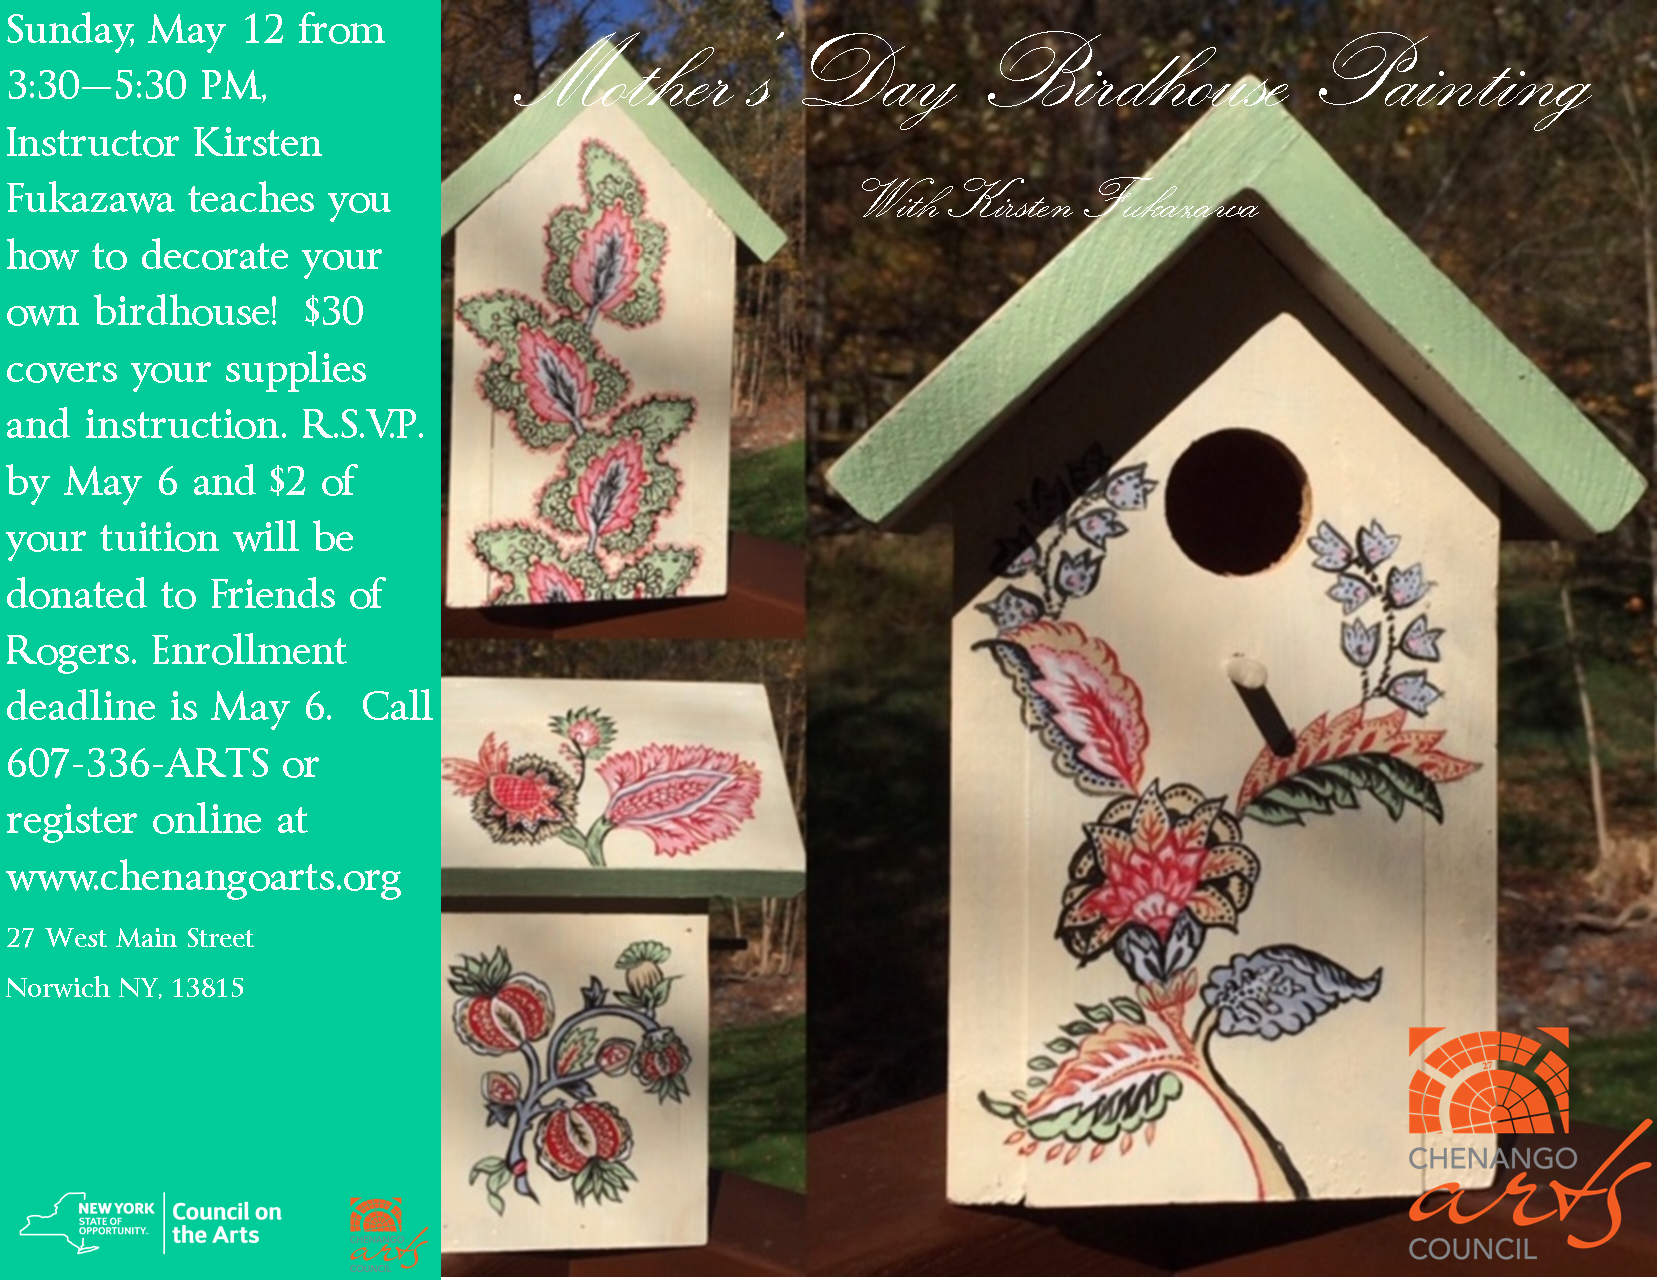 Mother's Day Birdhouse Painting With Kirsten Fukazawa